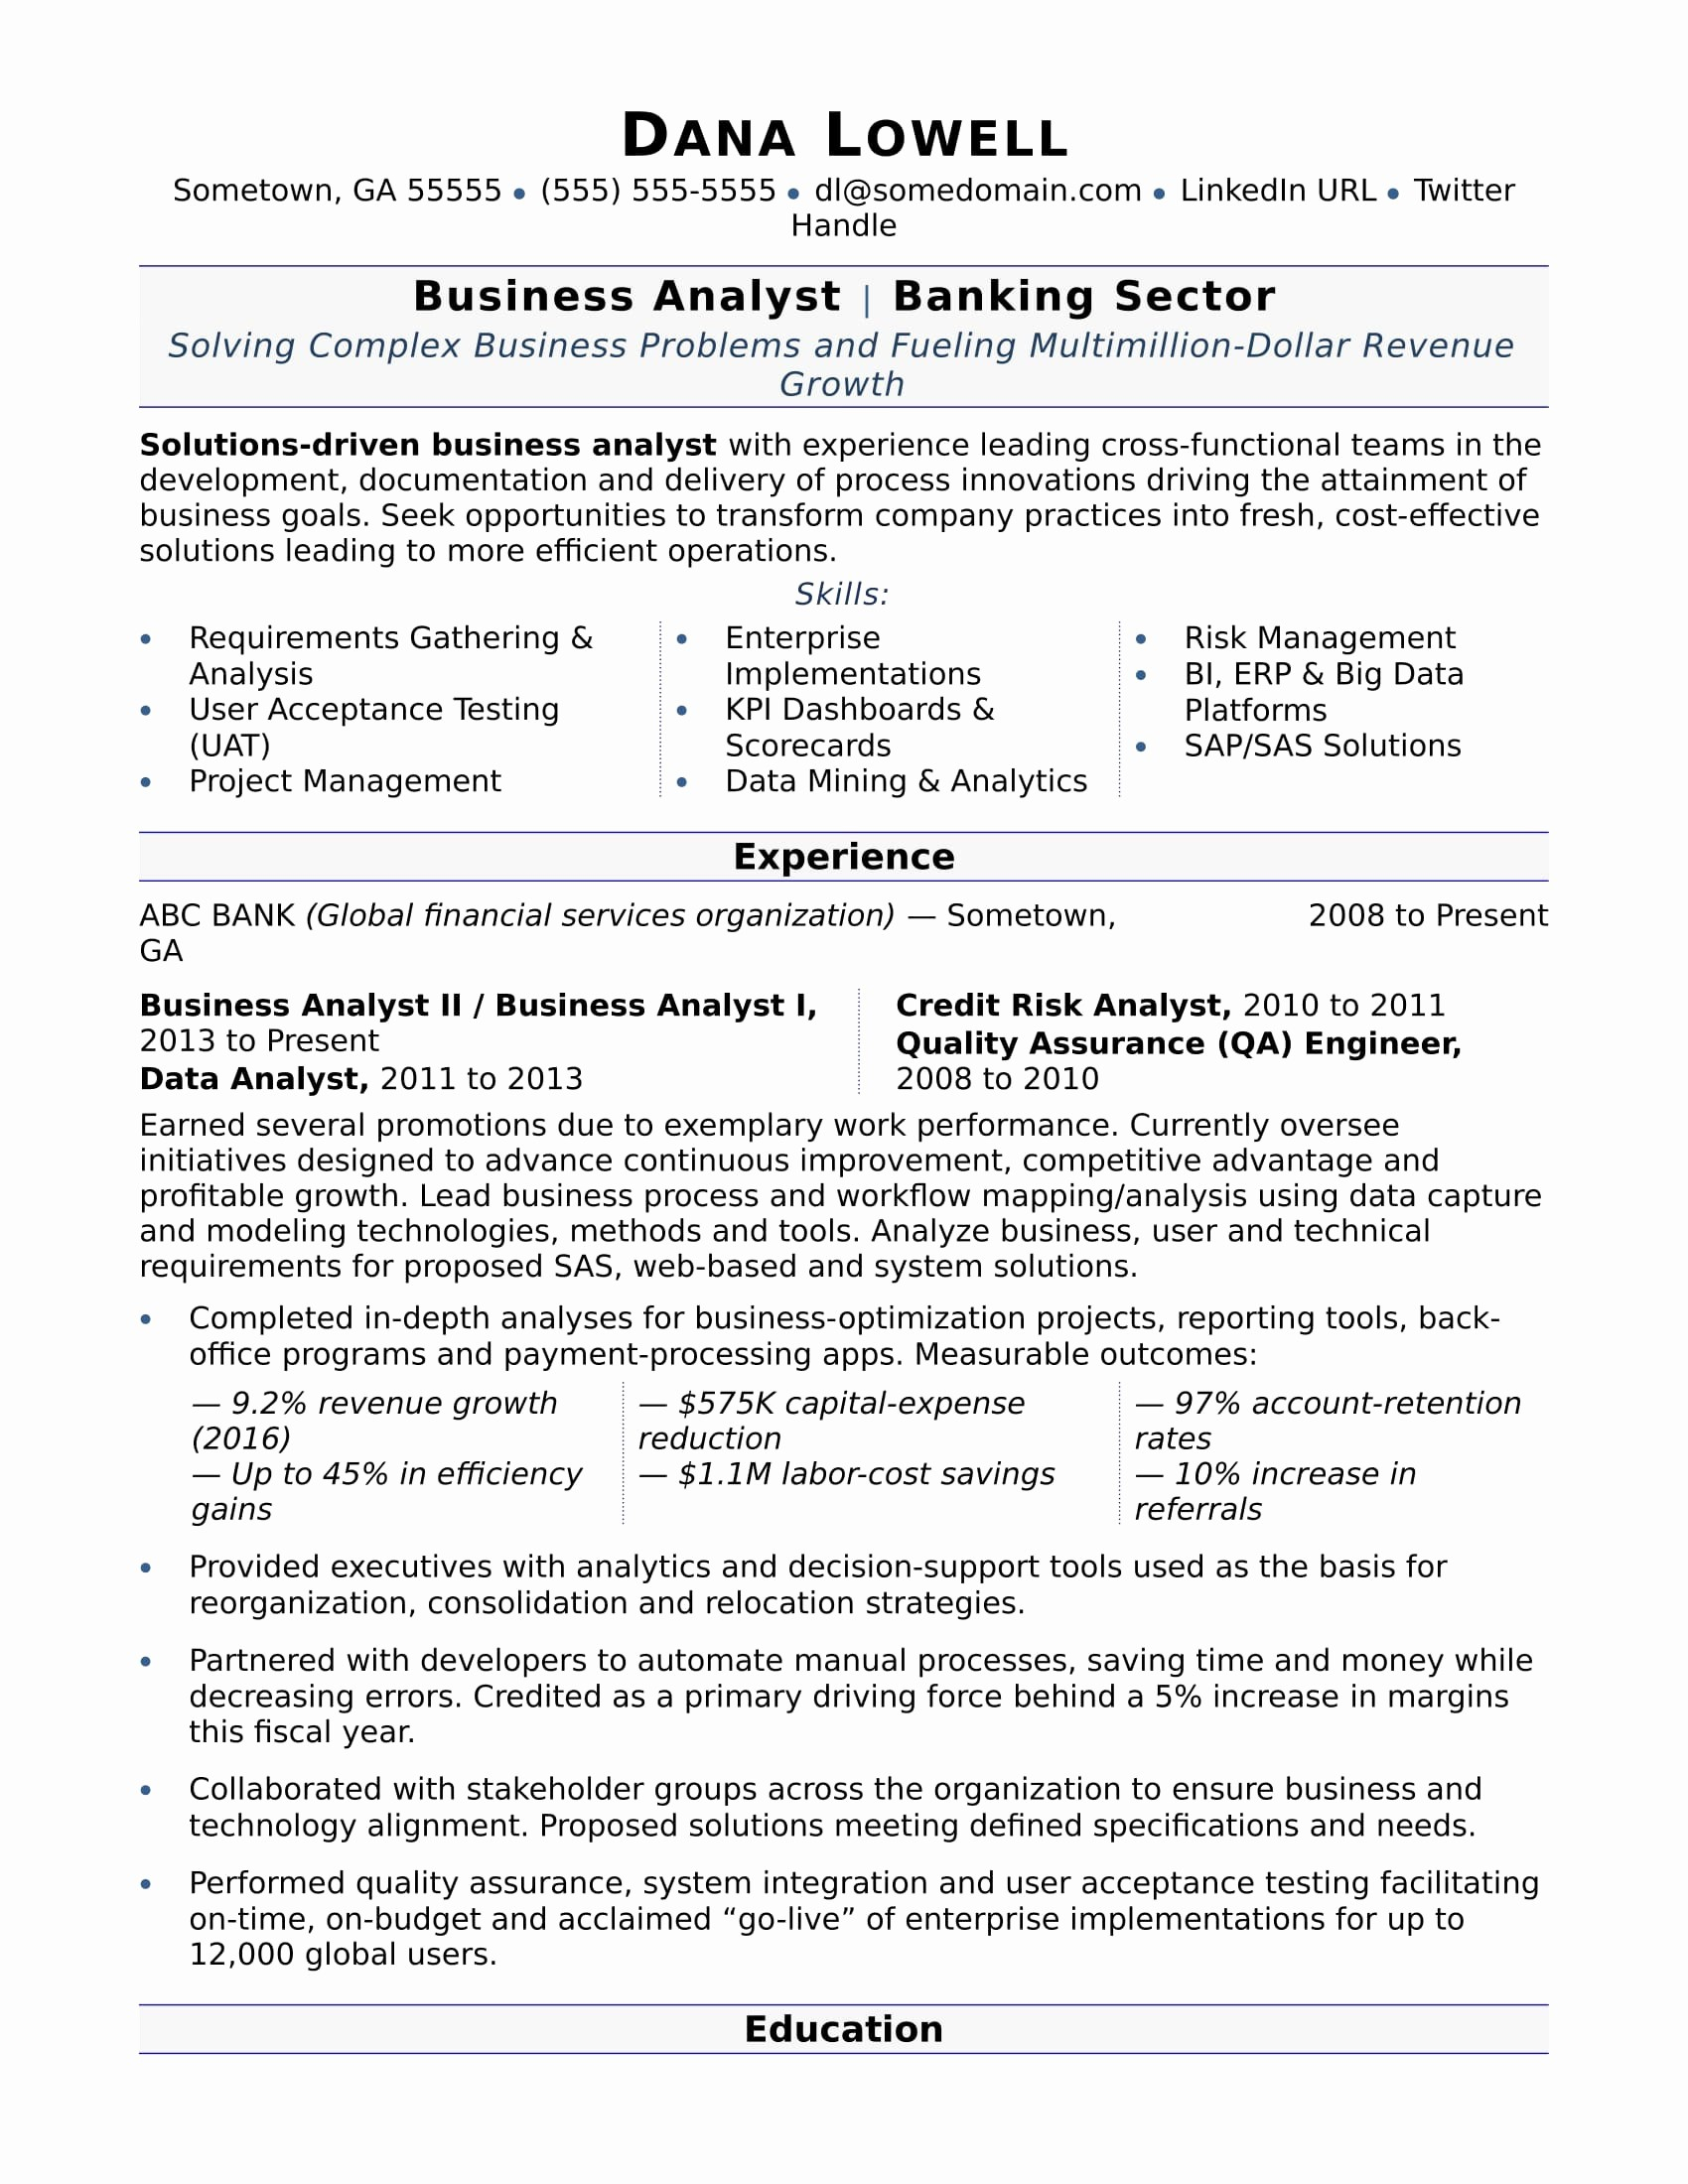 Collaborate Synonym Resume - Worked Synonym Resume Luxury Resume for A Cook Fresh Collaborate